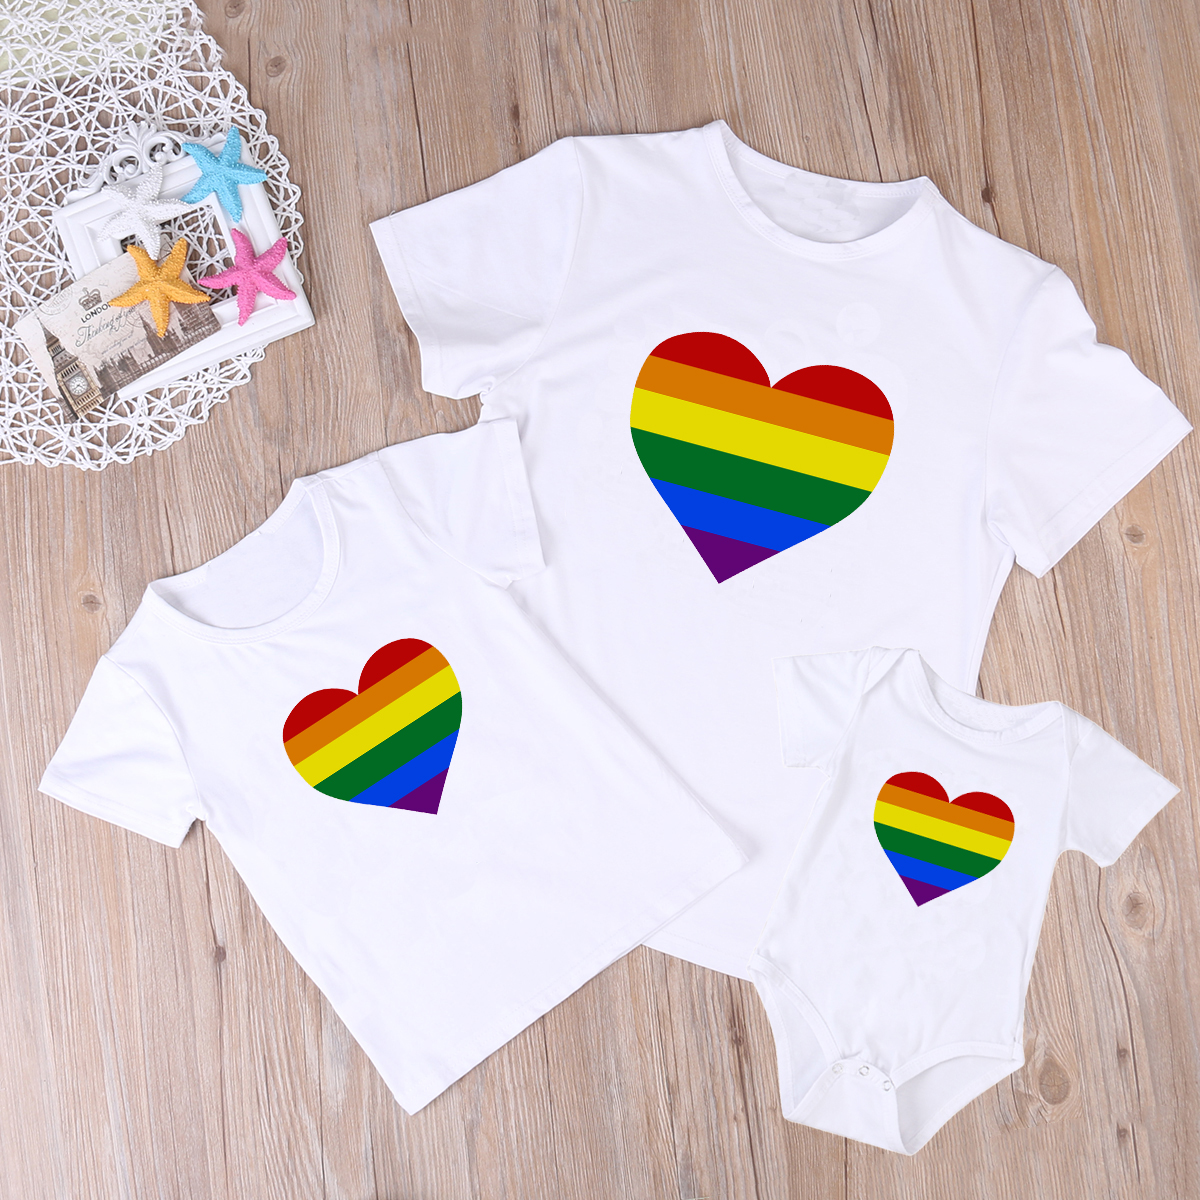 Matching Family Look Clothing Outfits Father Son Mother Daughter T Shirt Dad Mom And Me Matching Cotton Baby Romper Tops